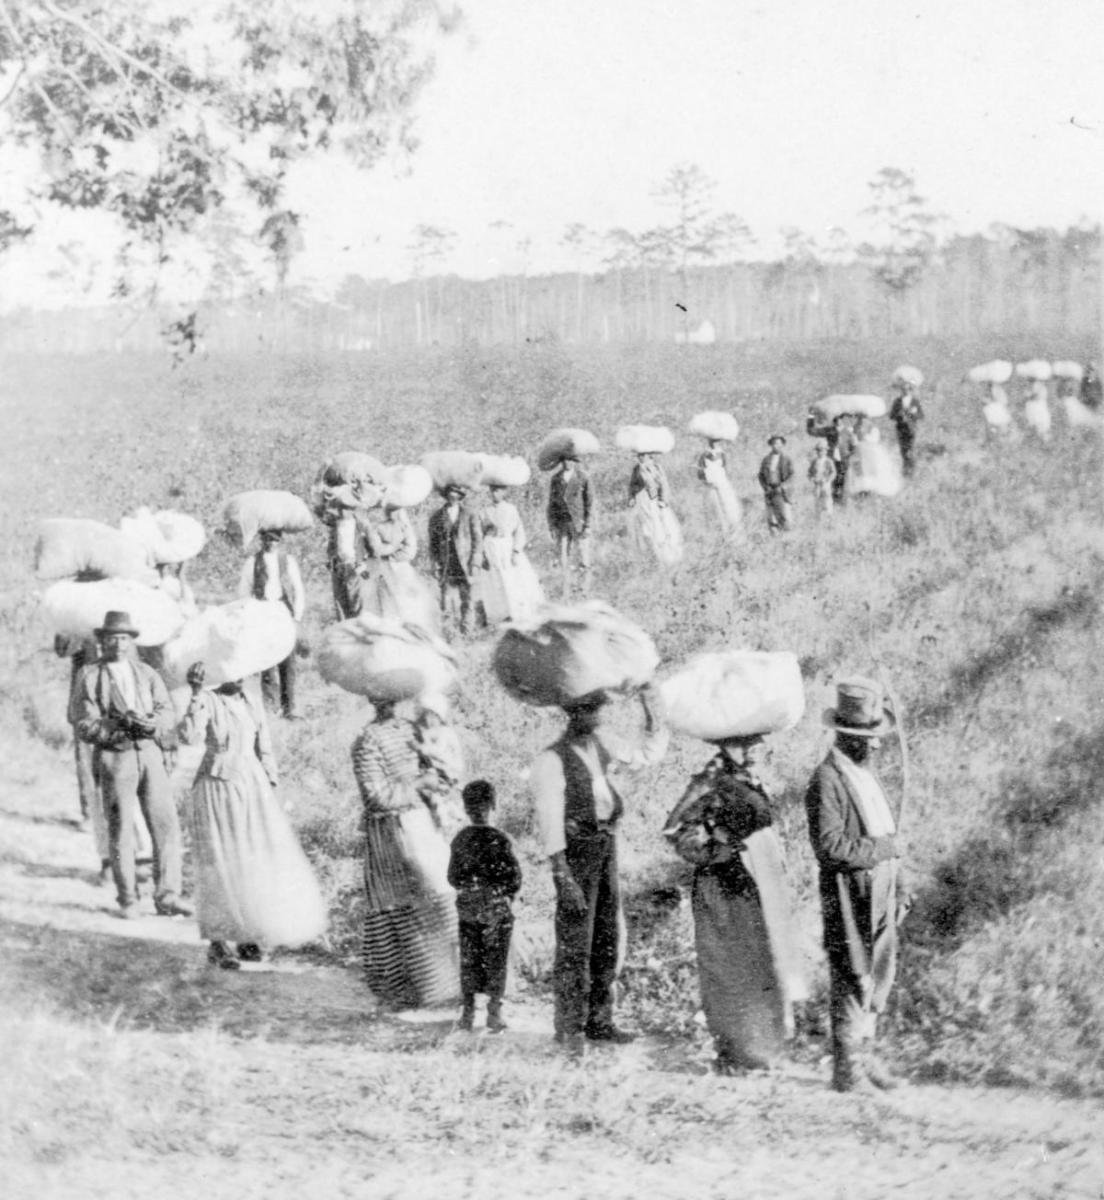 Slaves returning from the cotton fields in South Carolina, circa 1860. (Credit: Fotosearch/Getty Images)